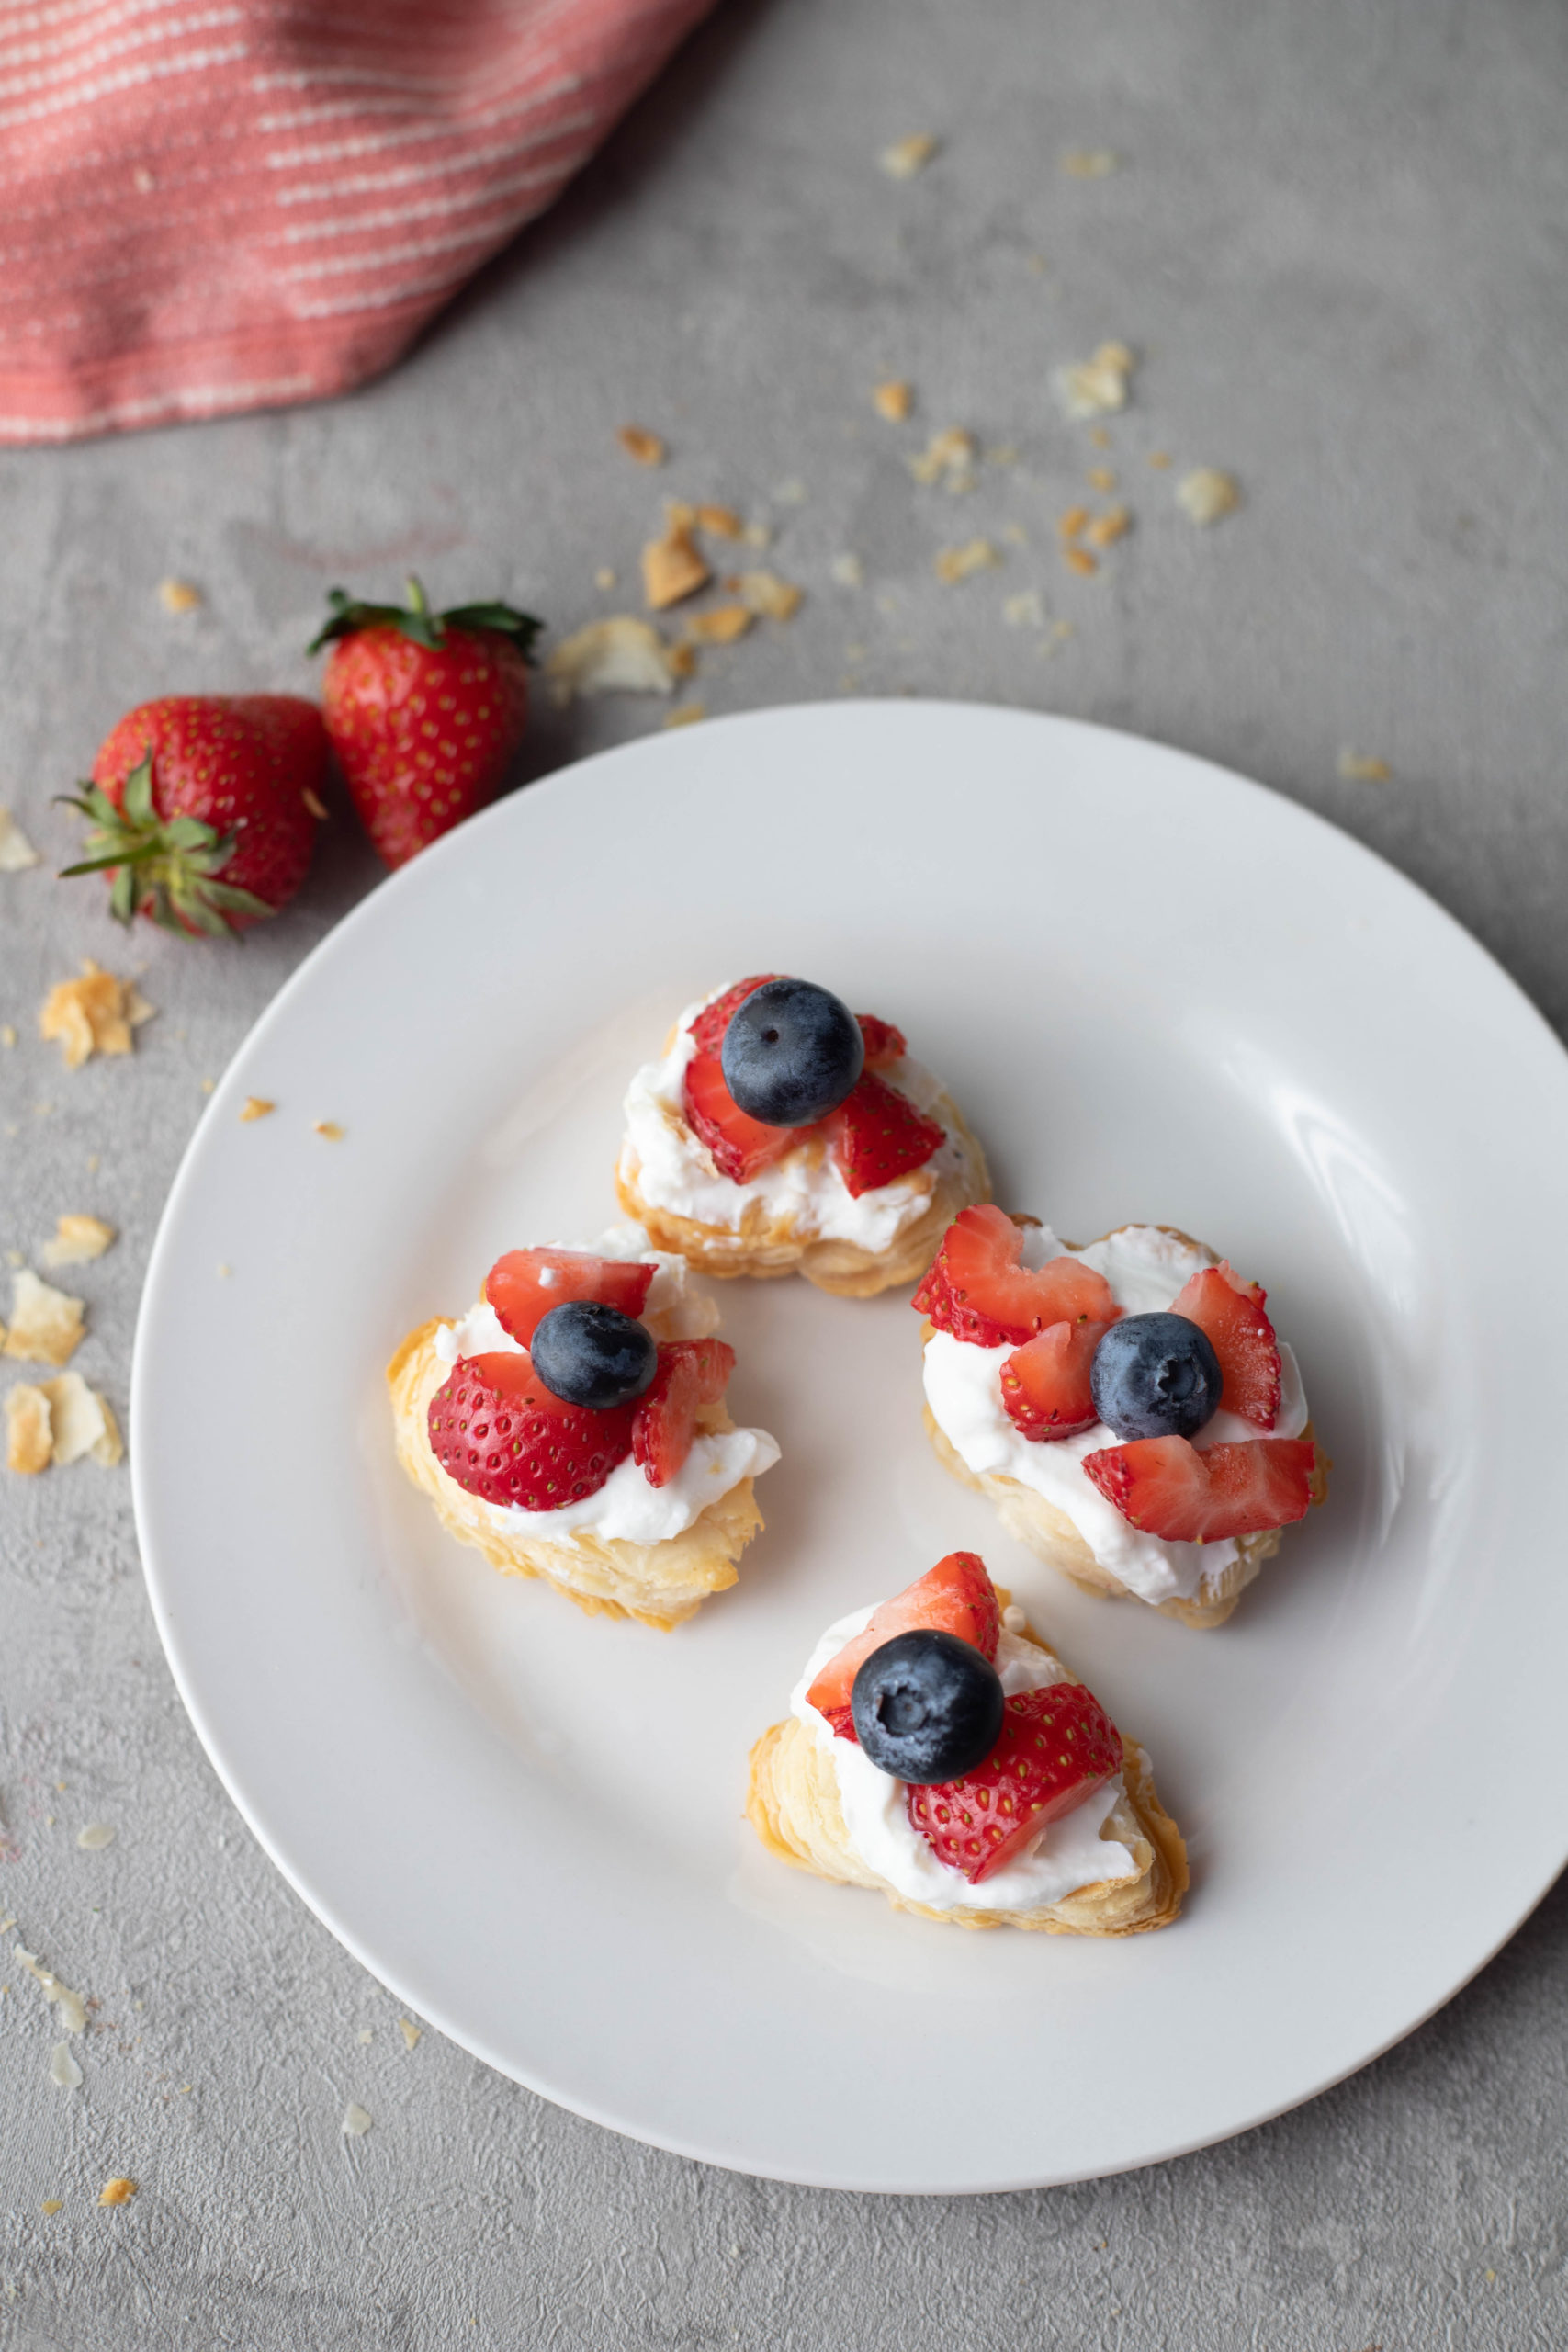 puff pastry bites with cream and berries